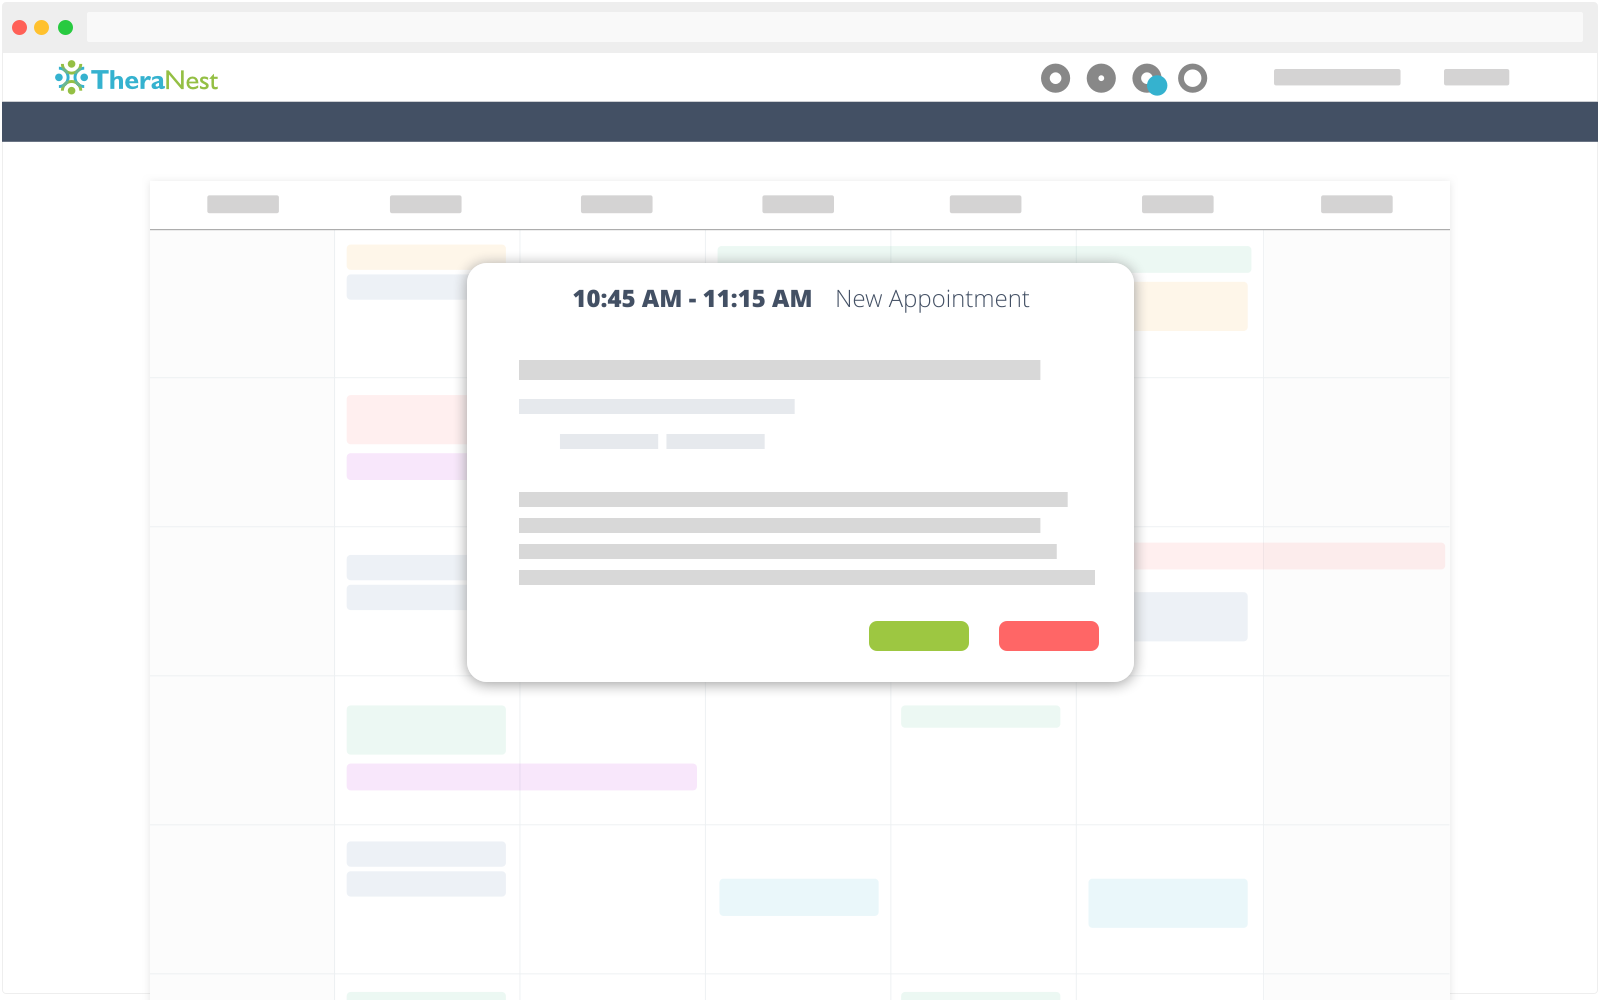 TheraNest Demo - Calendar for Your Scheduling Needs